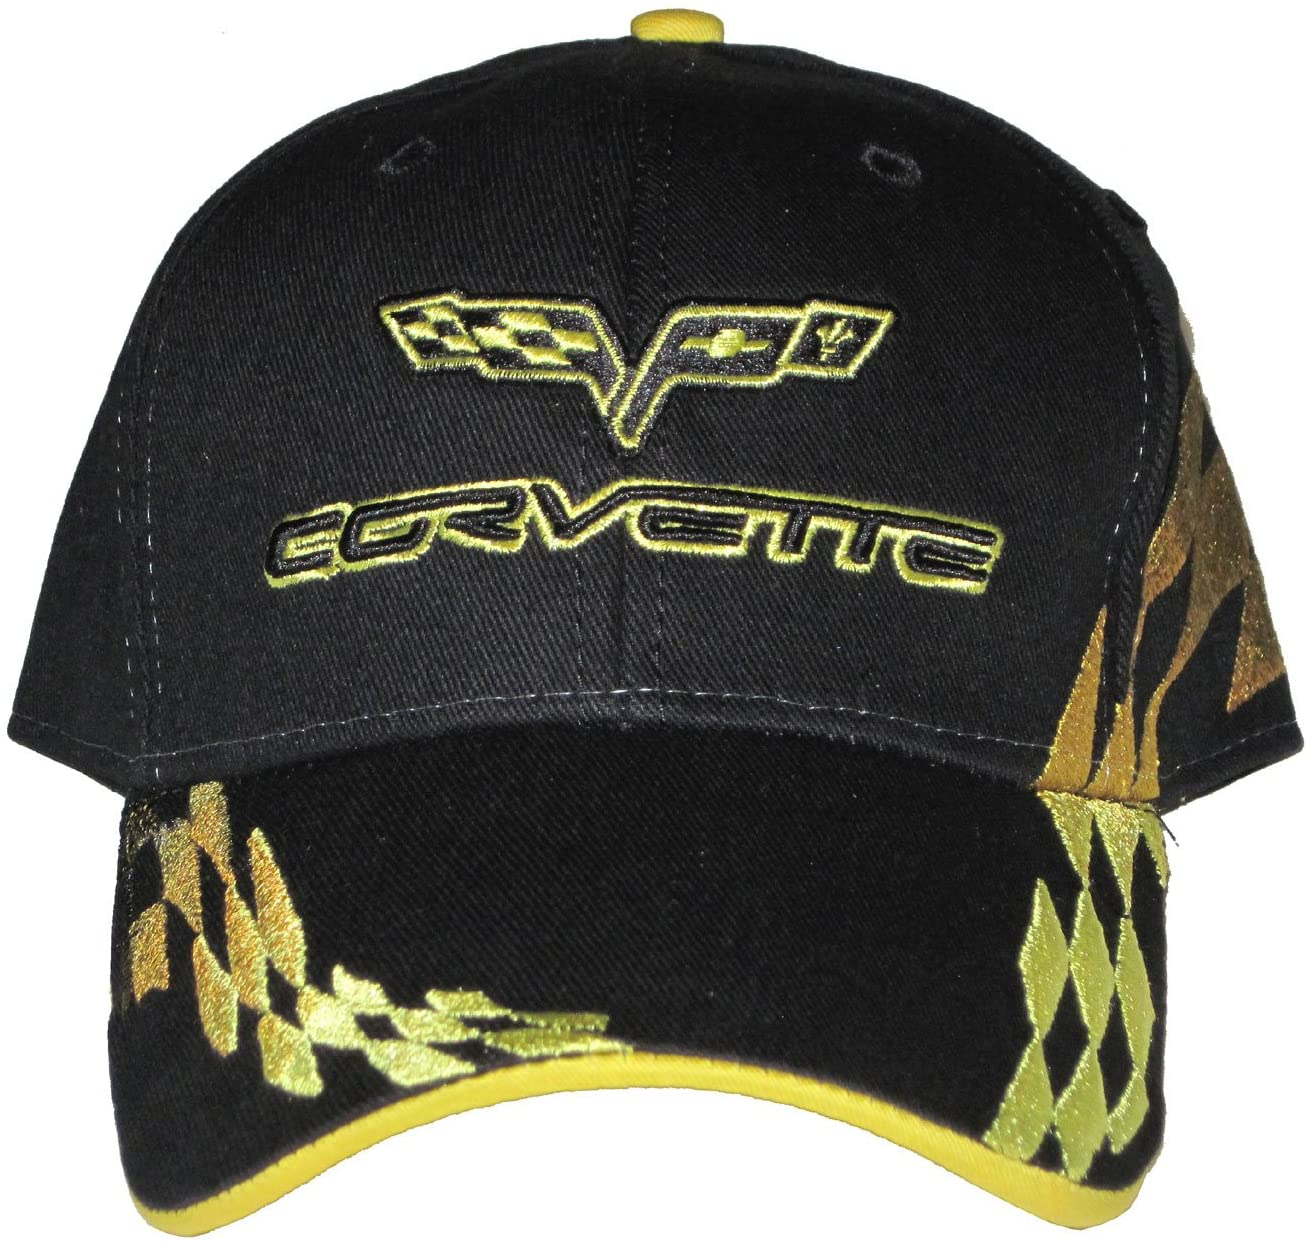 Greg's Automotive Corvette C6 Yellow Checkered Flag Logo Hat Cap Compatible with Chevrolet Chevy - Bundle with Driving Style Decal